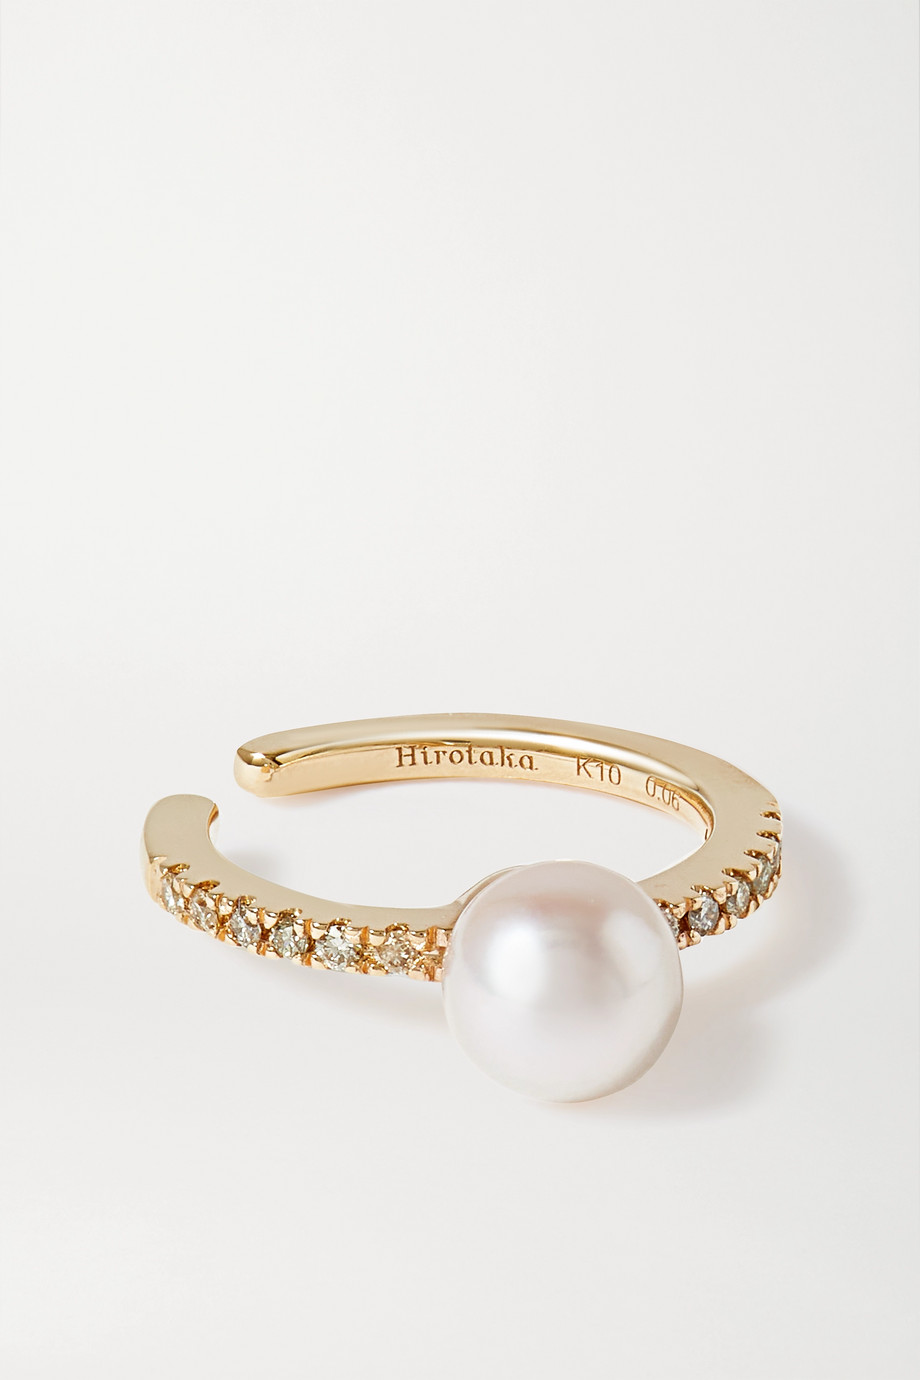 Hirotaka Gold, pearl and diamond ear cuff